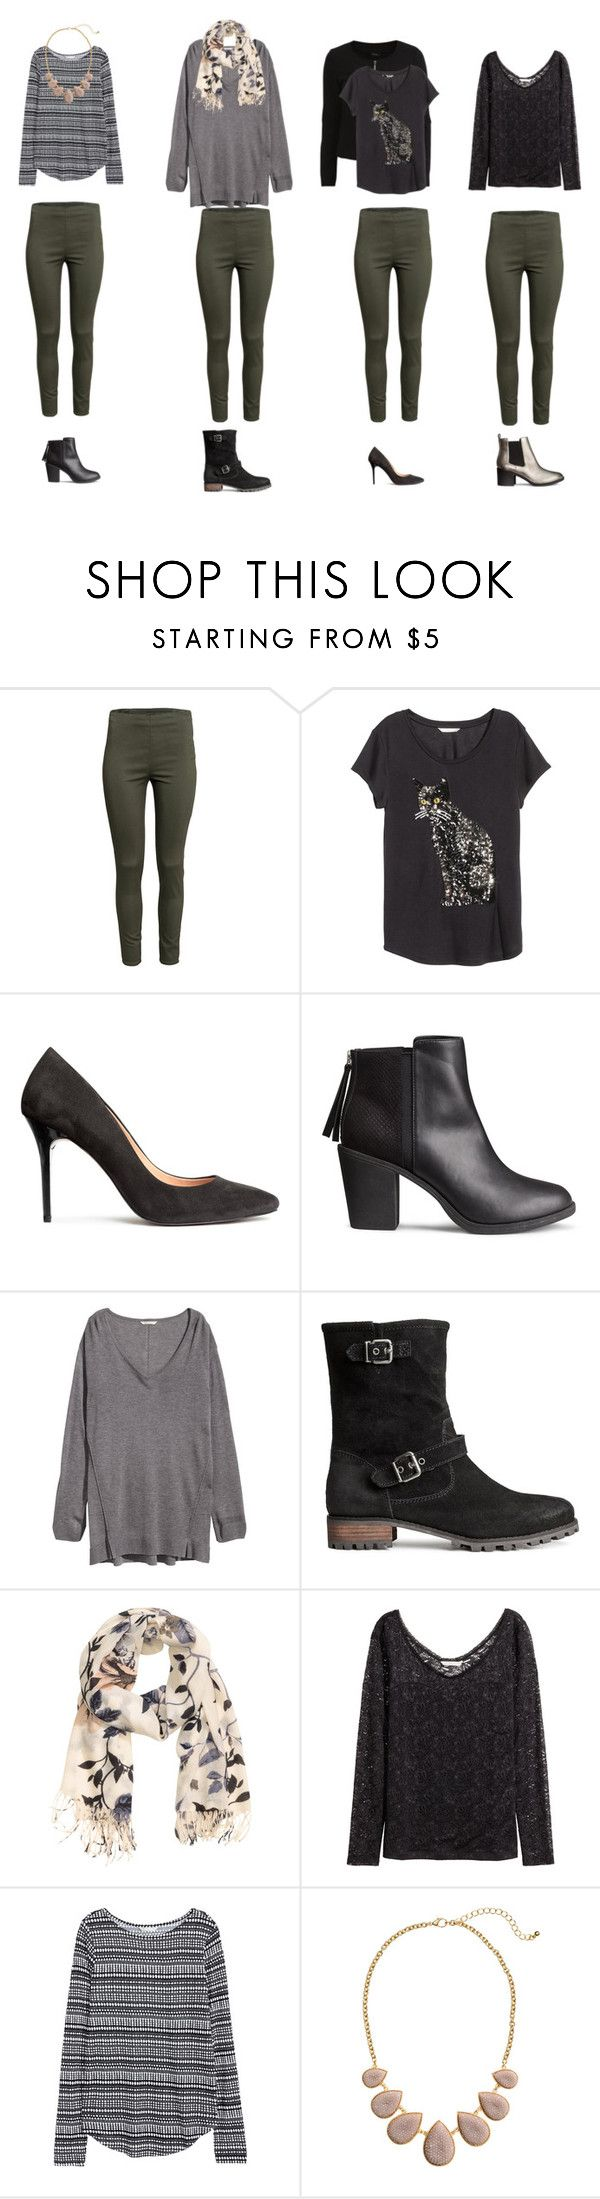 """""""4 set kaki trousers"""" by lone-haure-norrevang on Polyvore featuring H&M, VILA, women's clothing, women, female, woman, misses and juniors"""